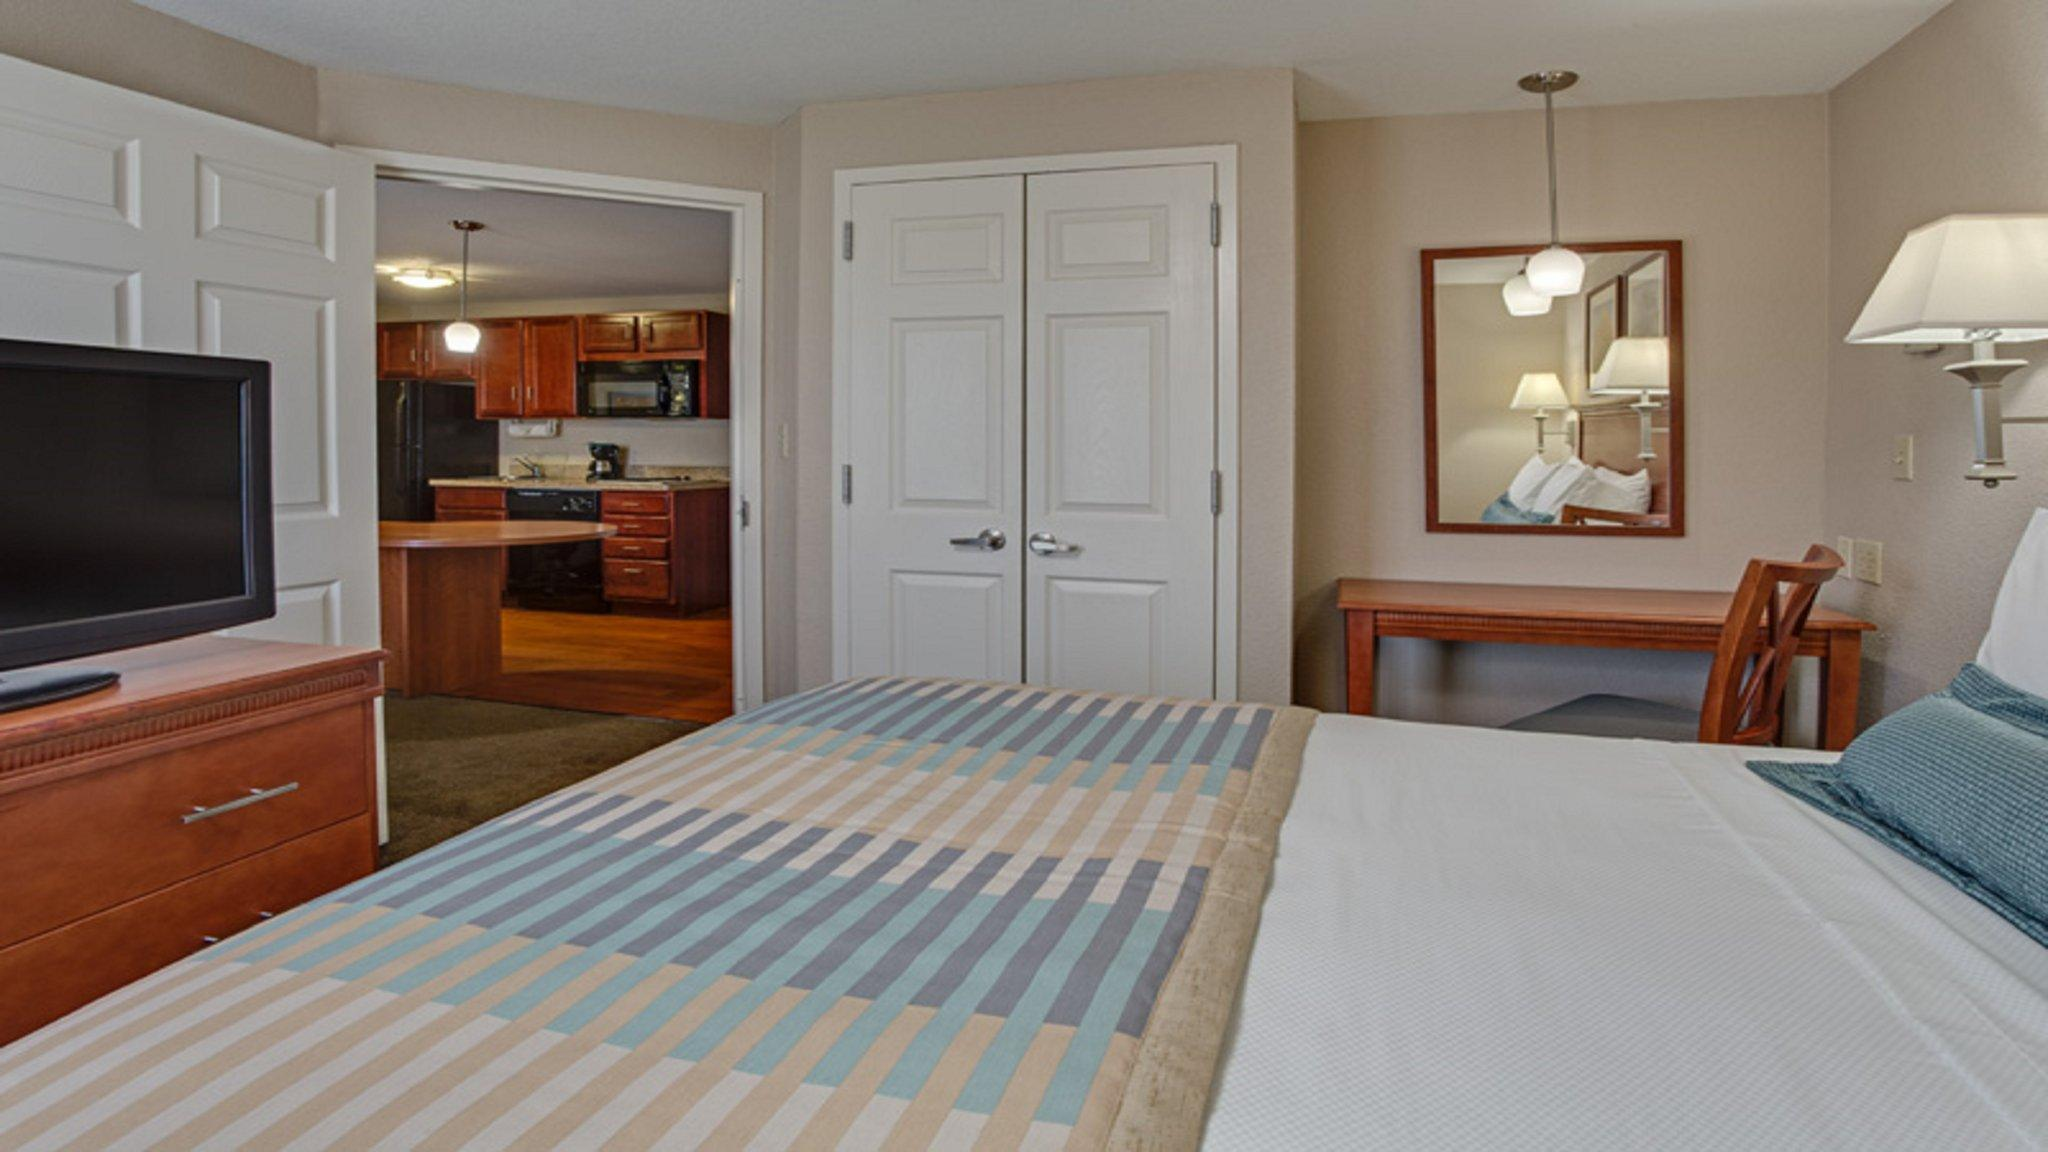 1 Queen Bed 1 Bedroom Suite Non-Smoking